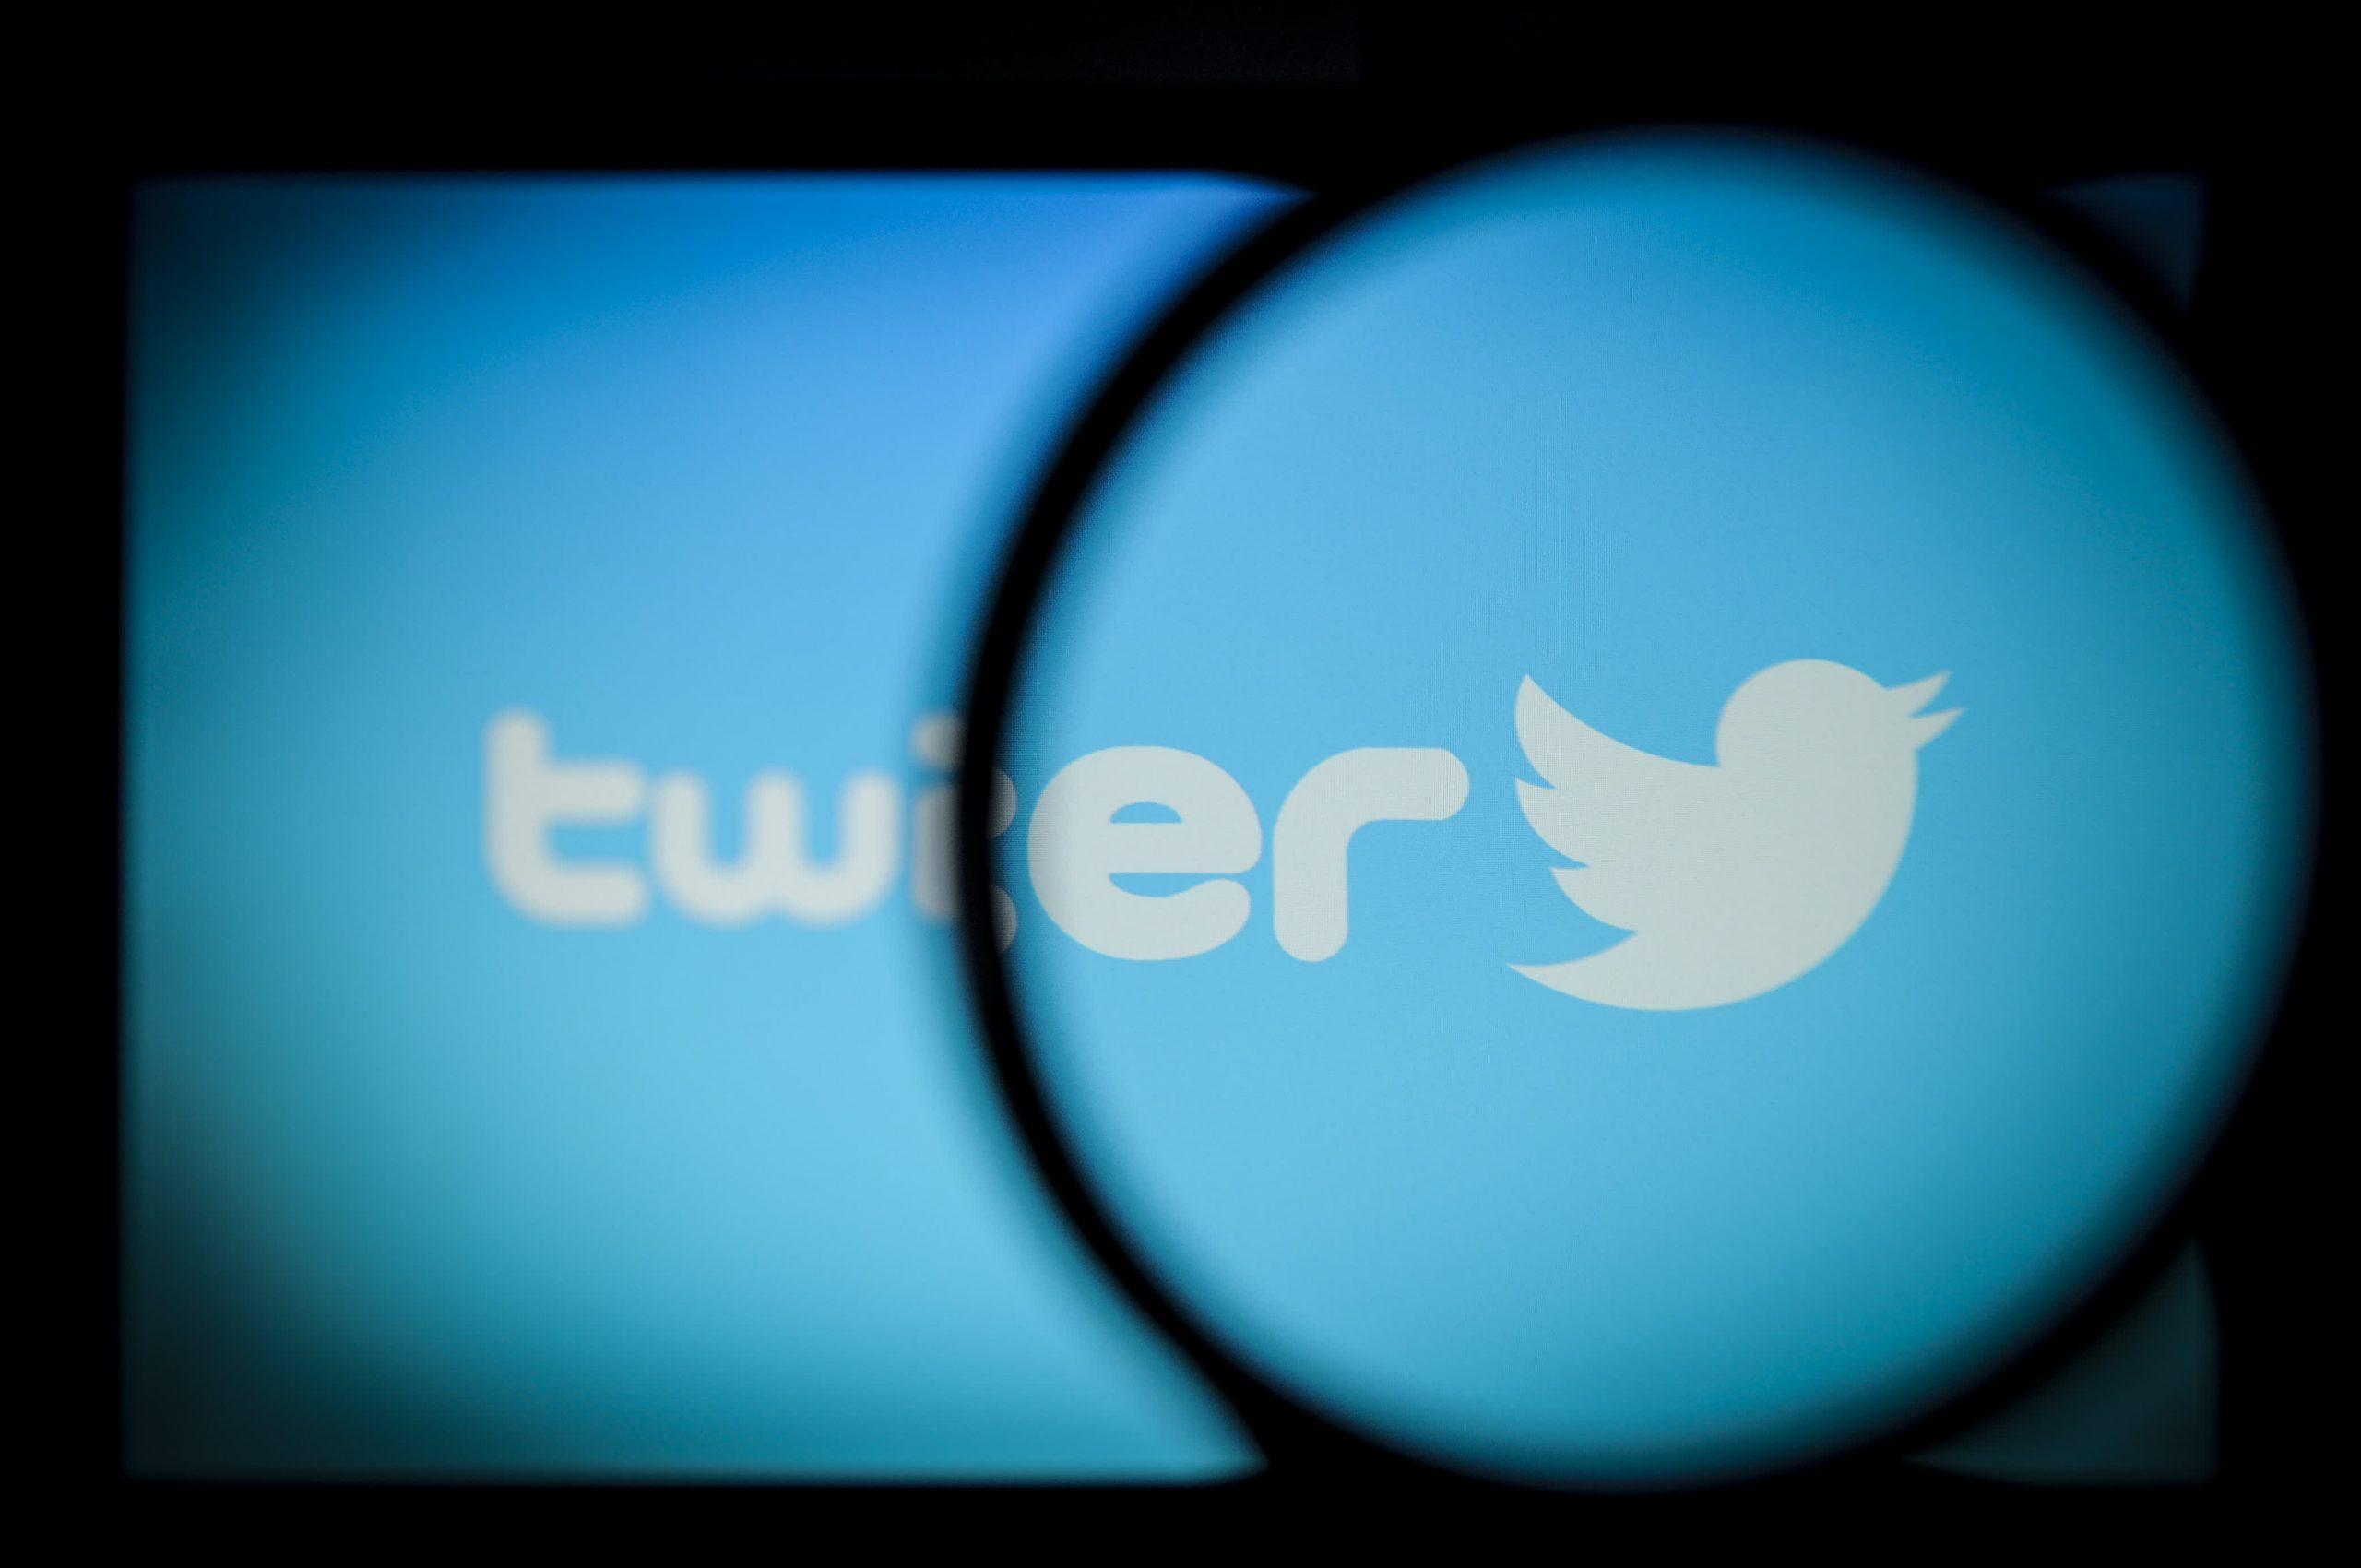 Twitter's workforce diversity targets will help bring balance to the platform, says Asia-Pacific head